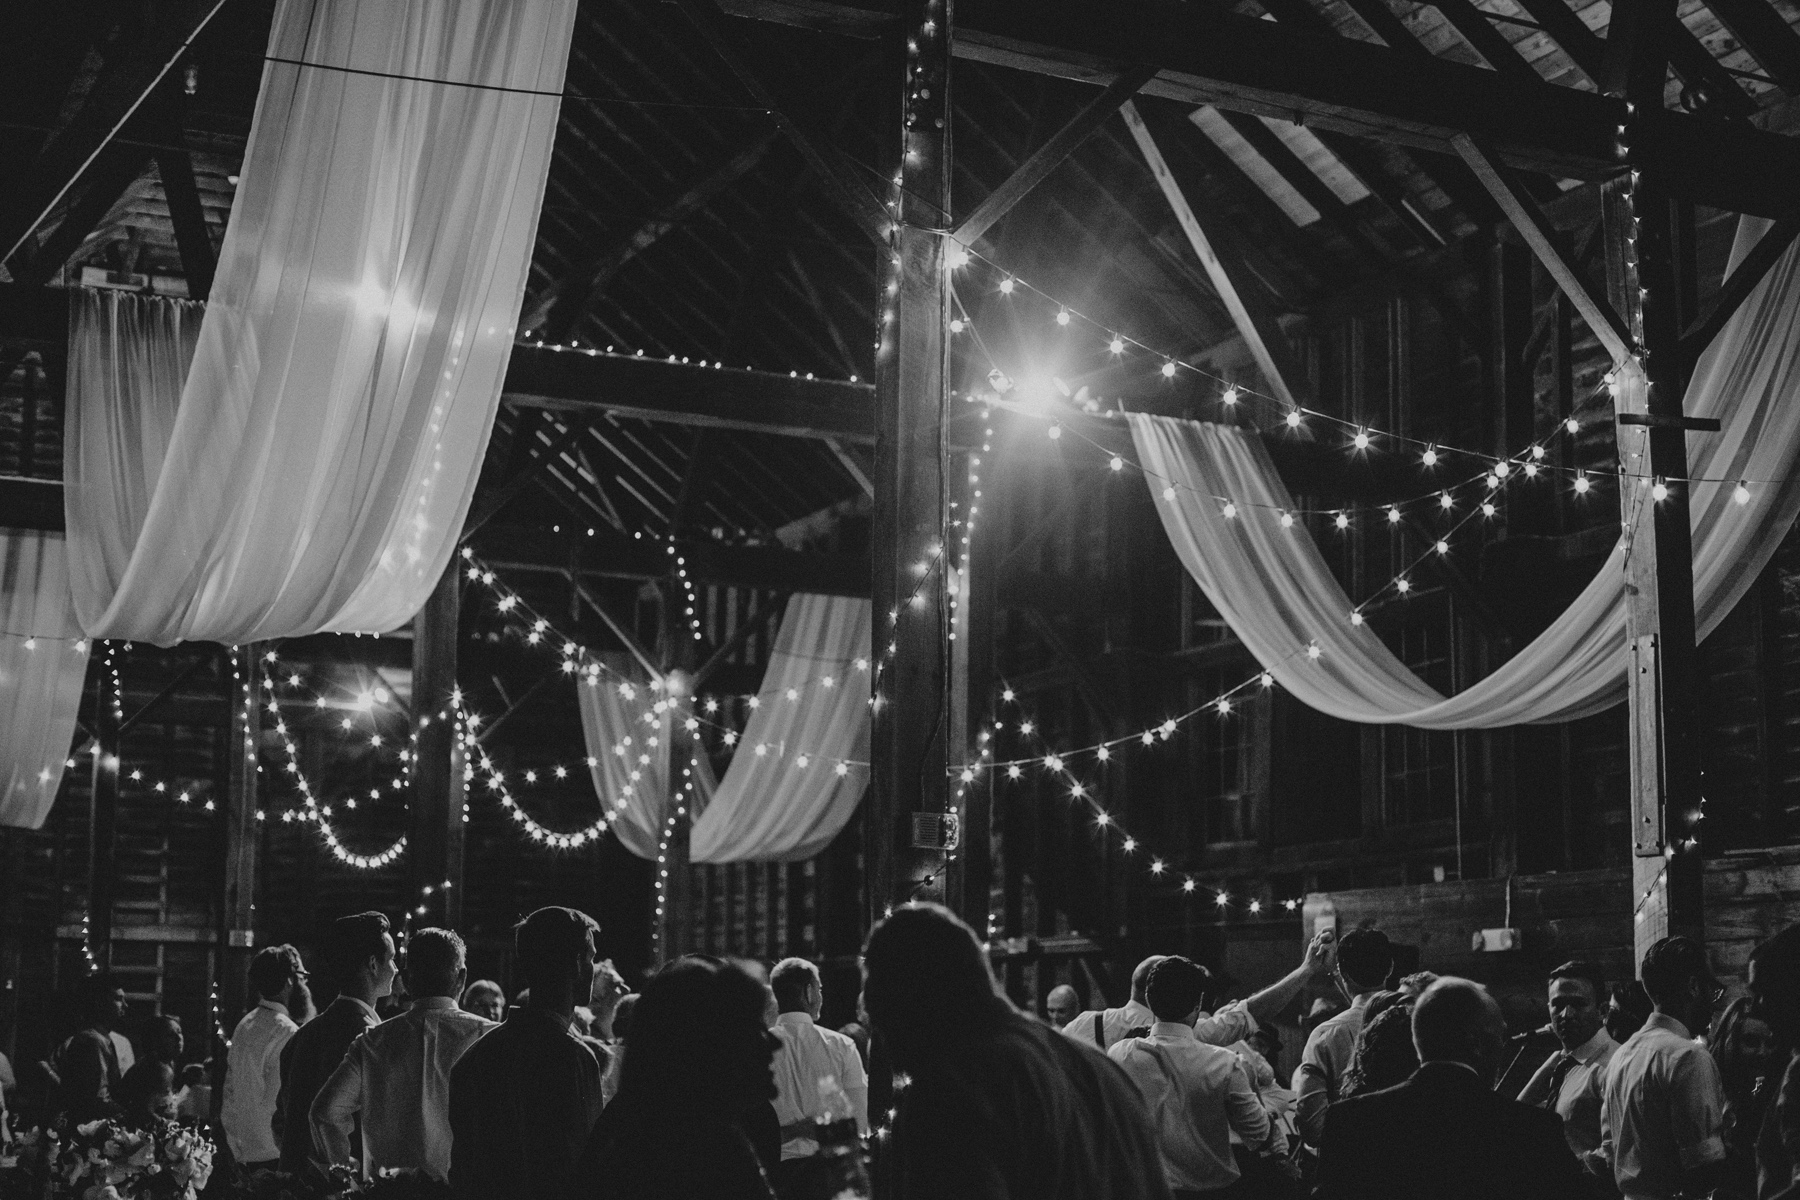 shaker_heritage_barn_wedding_0063.jpg